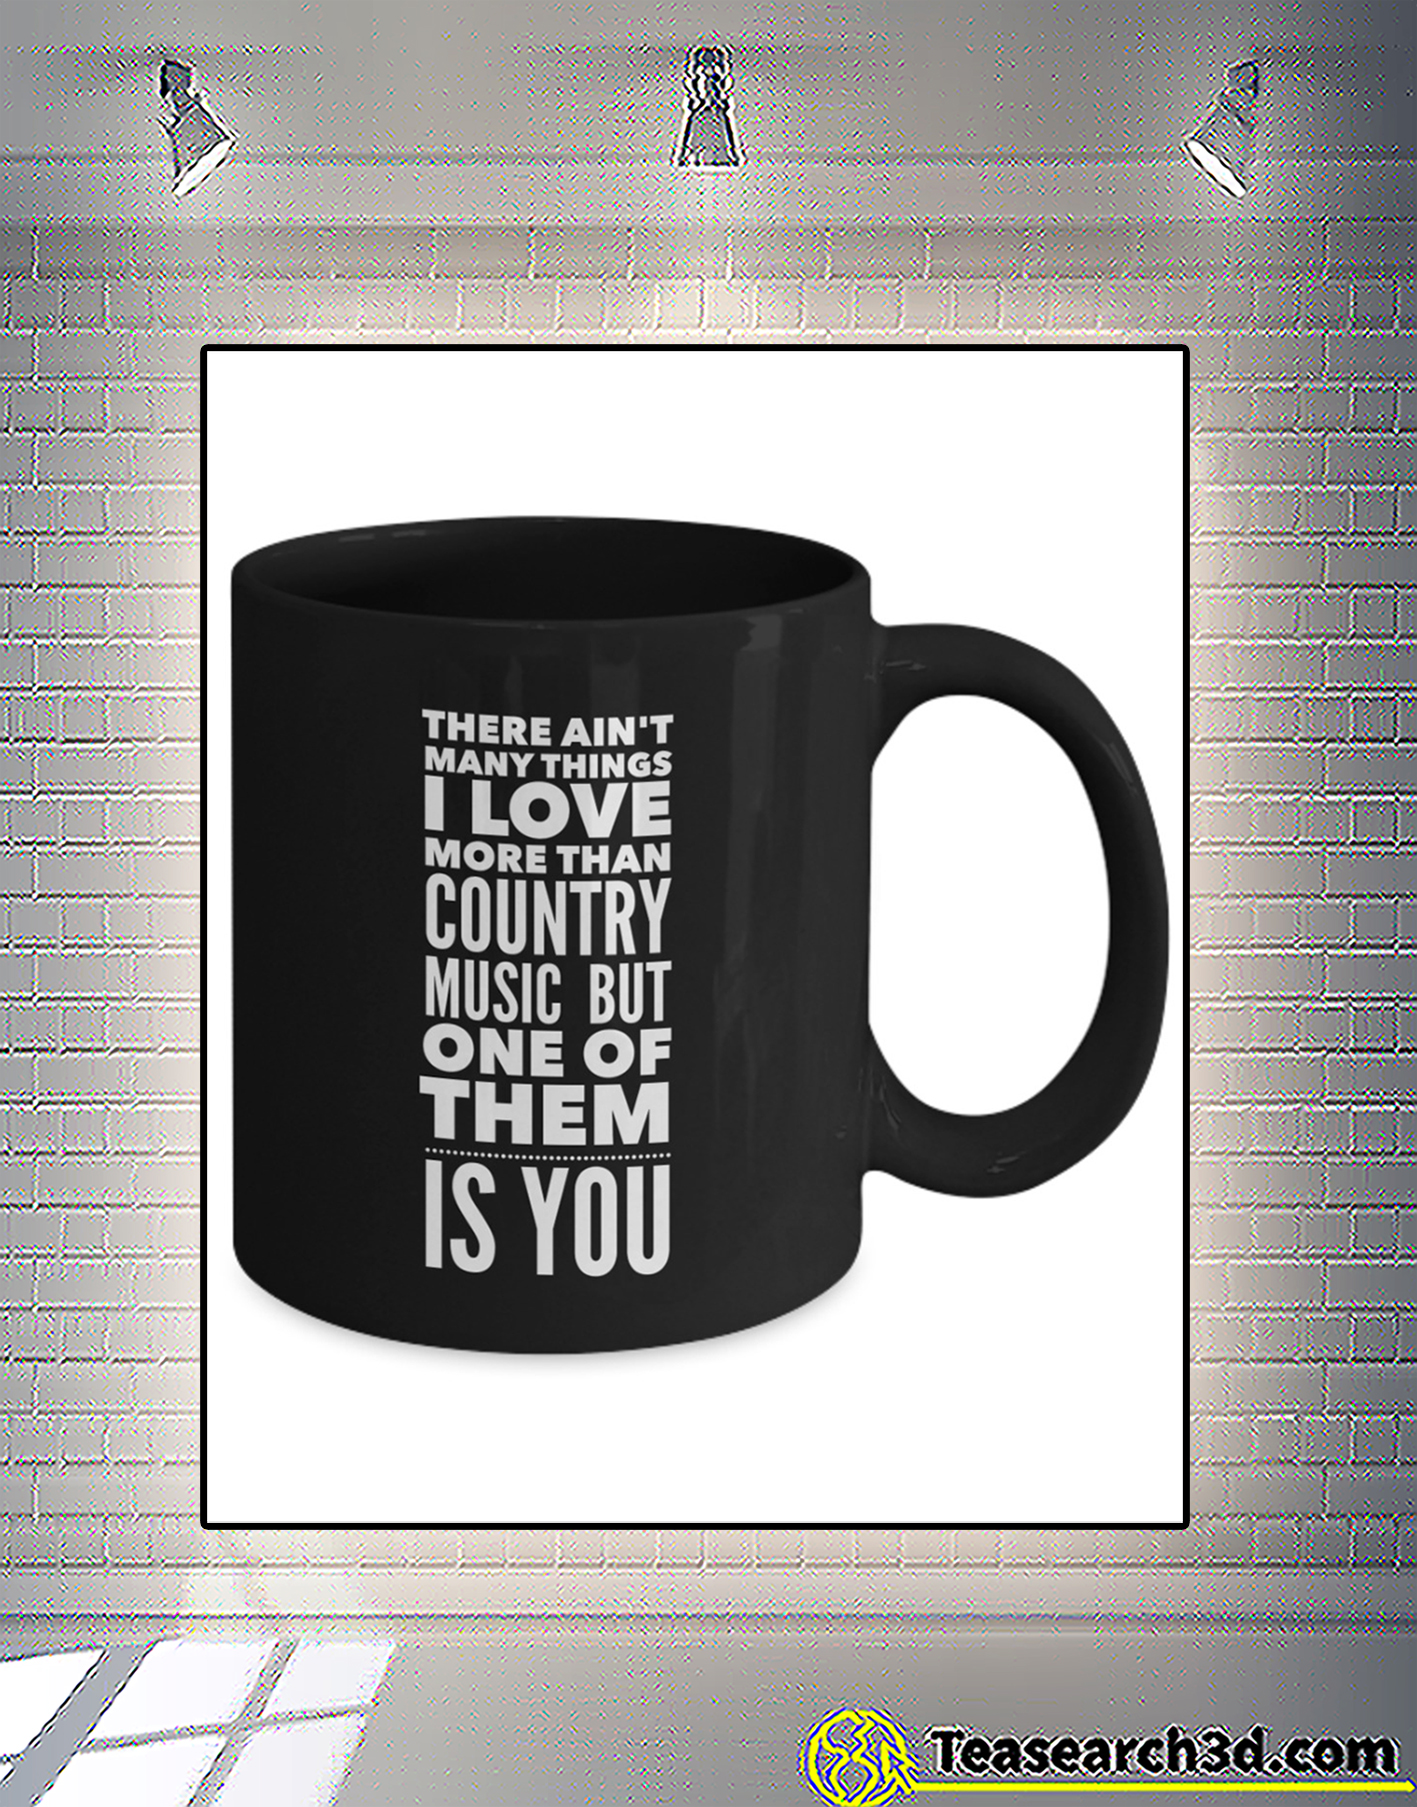 There ain't many things i love more than county music mug 1